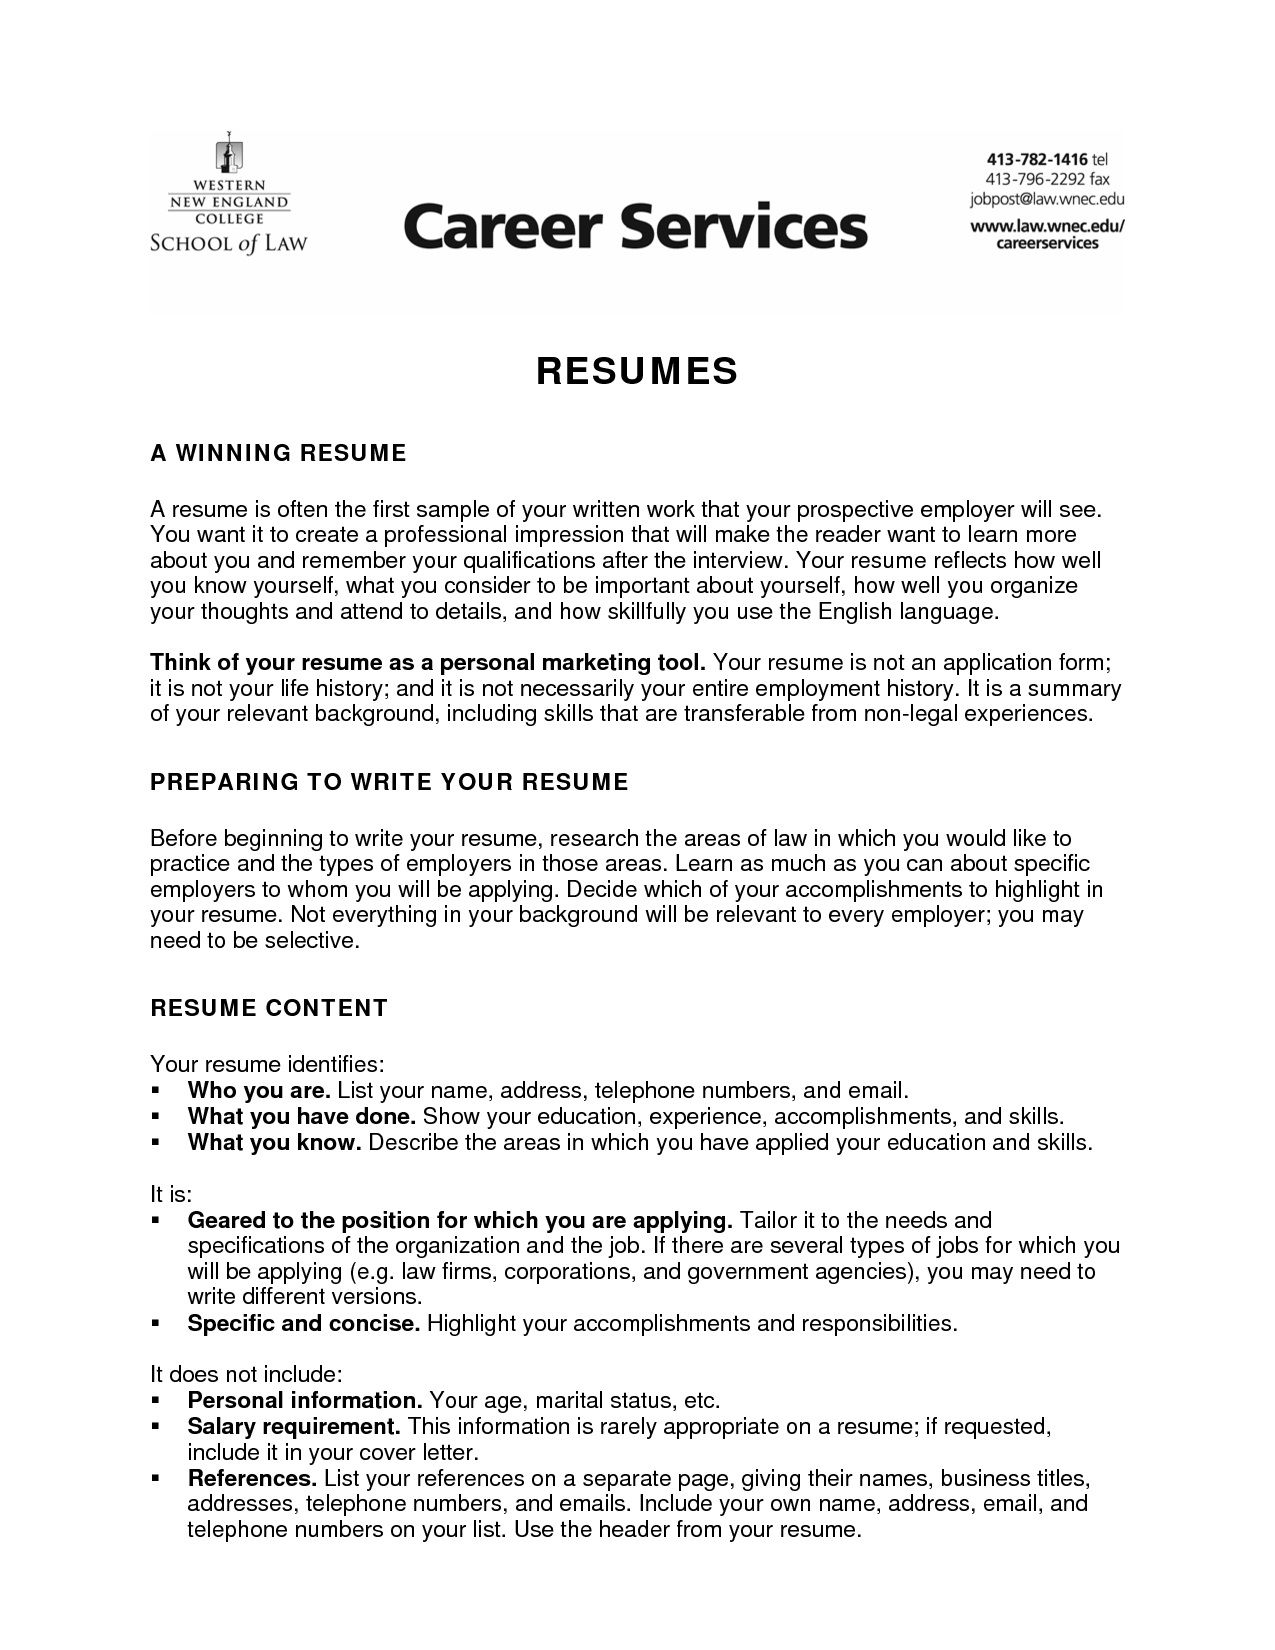 sample resume objective for college student latest example career statement samples and Resume Objective For A College Resume